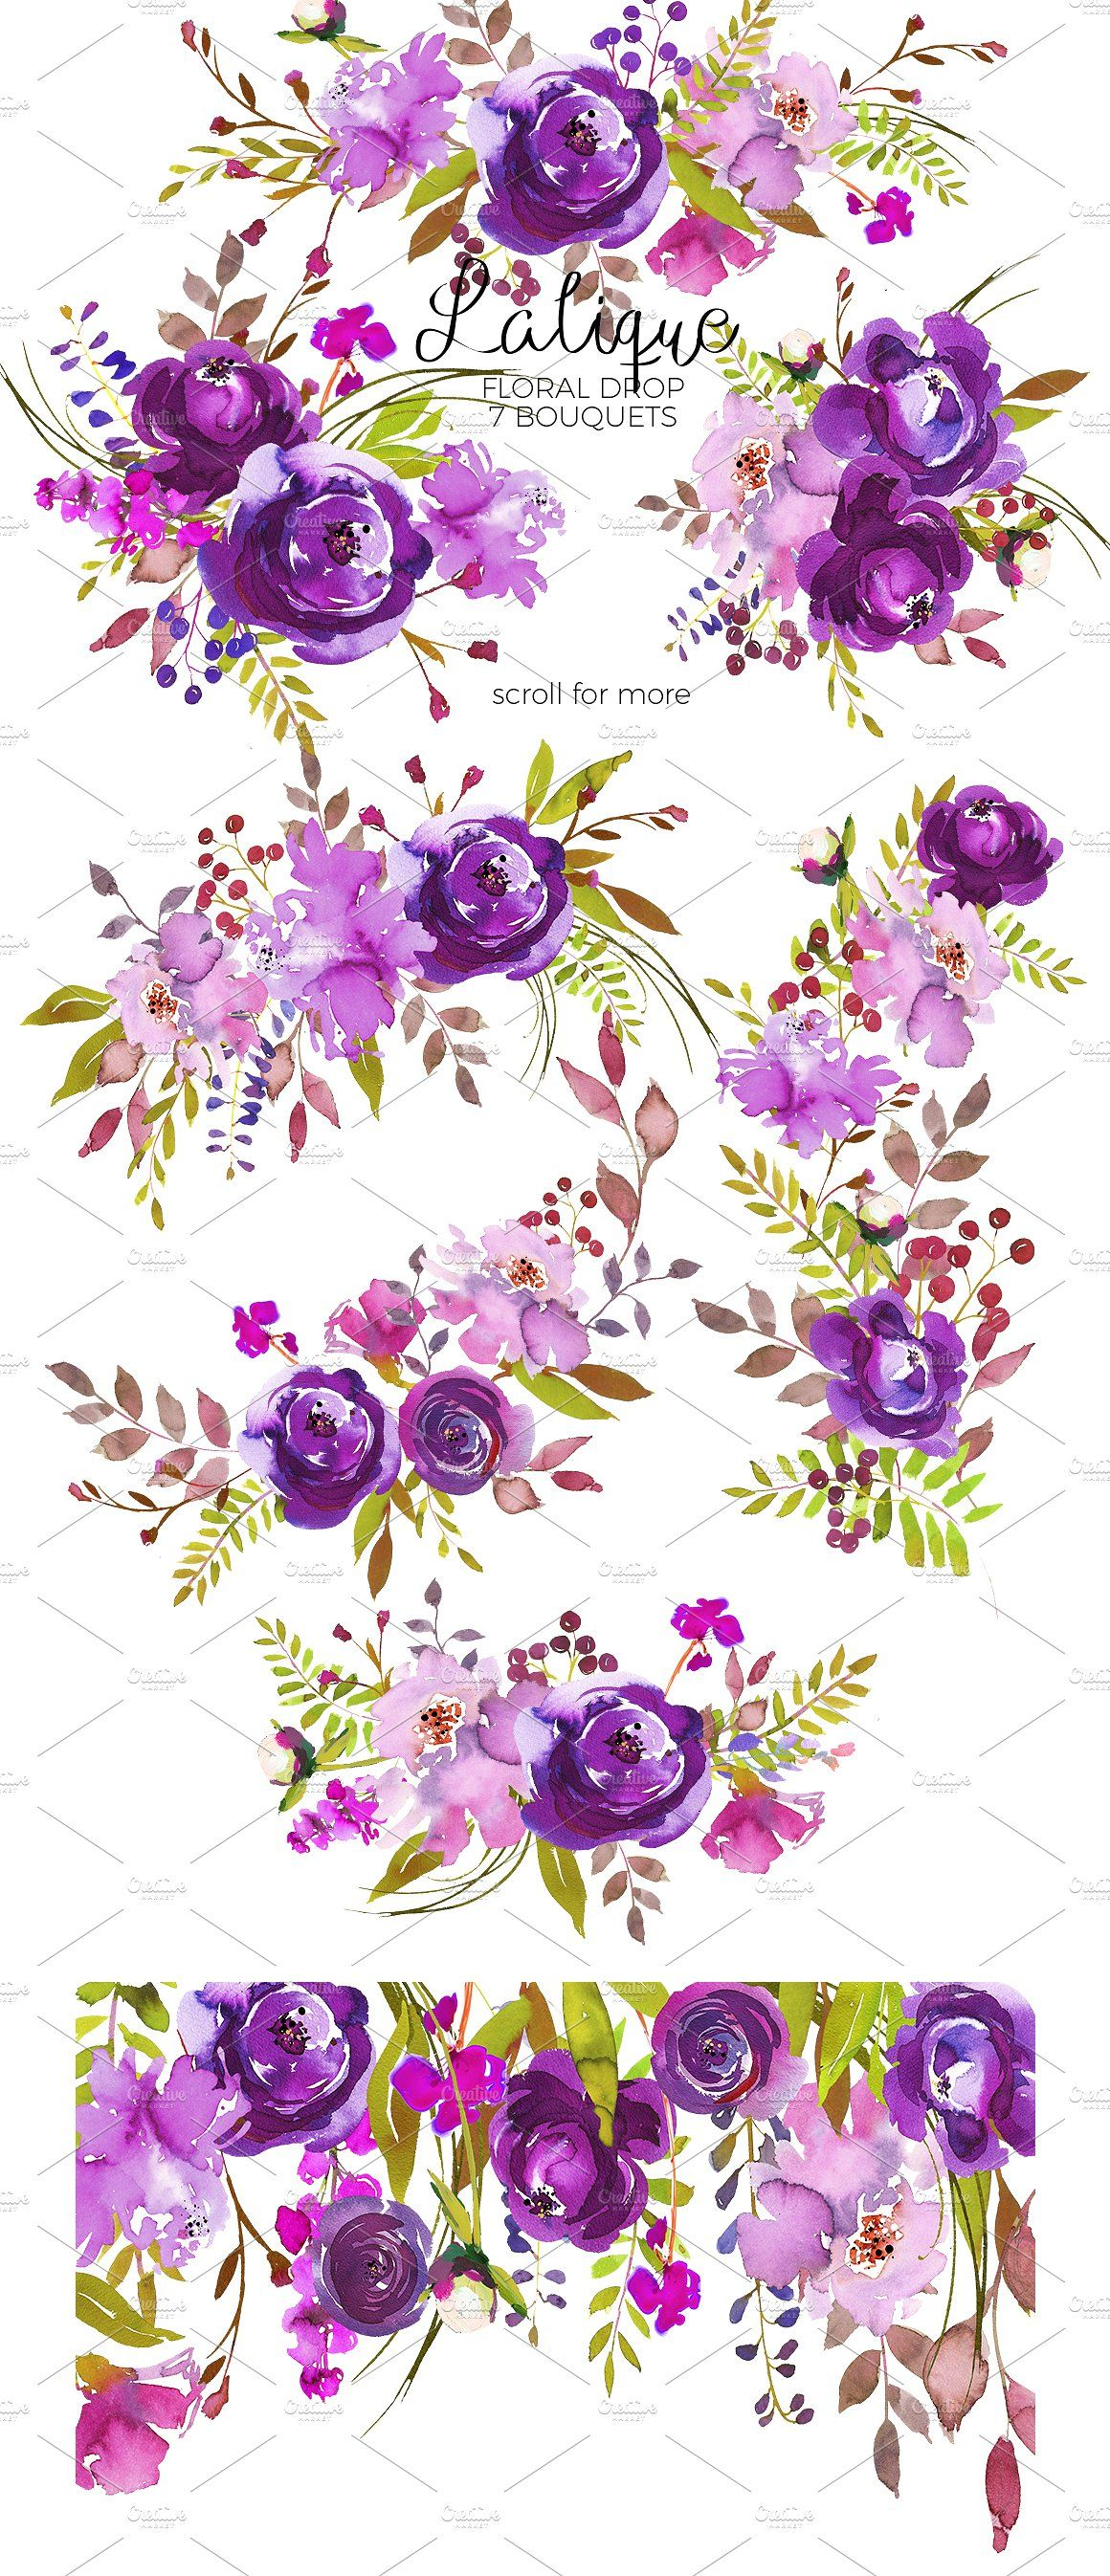 Violet Purple Watercolor Flowers Floral Watercolor Watercolor